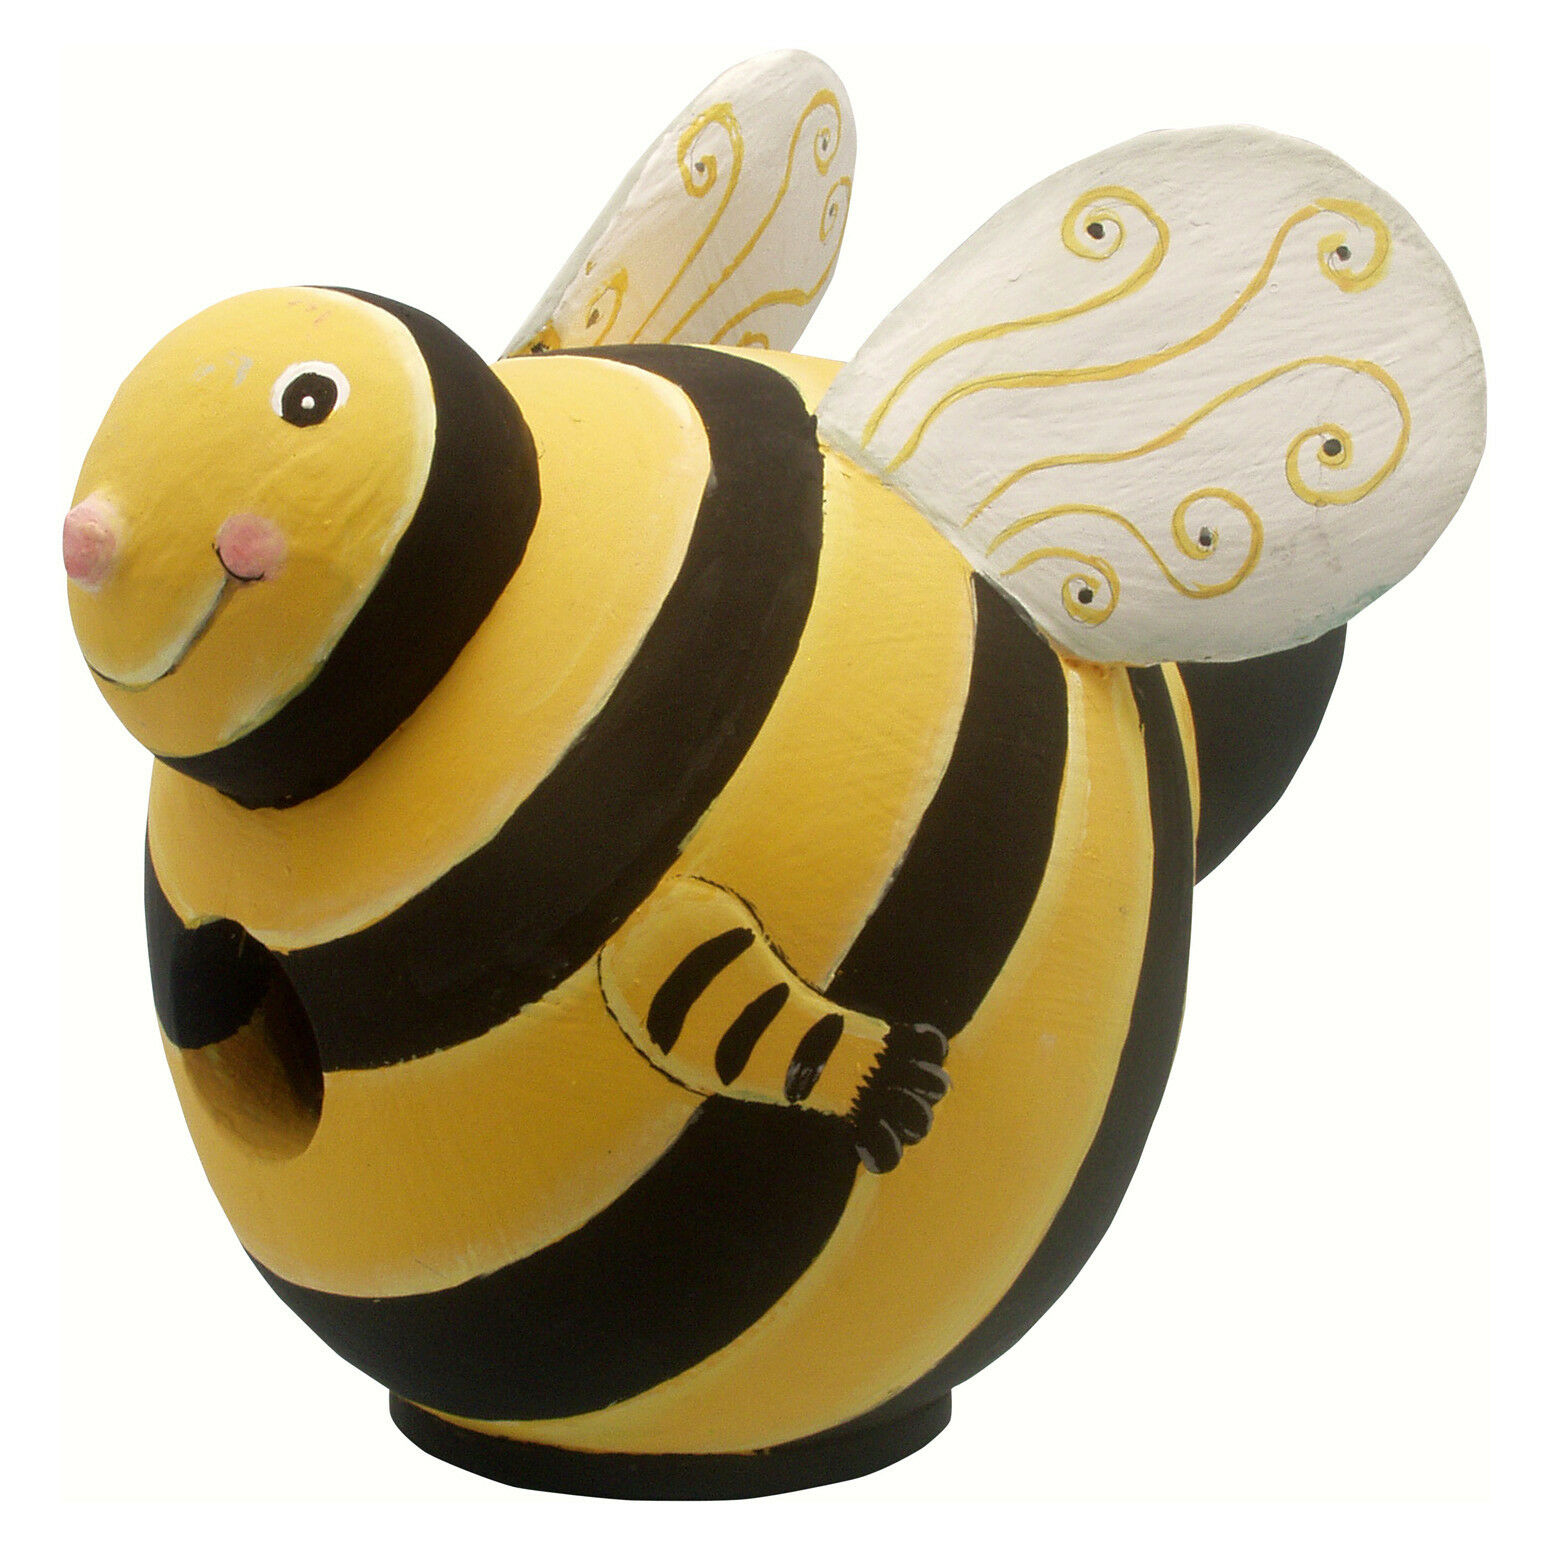 BIRD HOUSES - Bumble Bee Birdhouse - Bumblebee Bird House - Garden ...